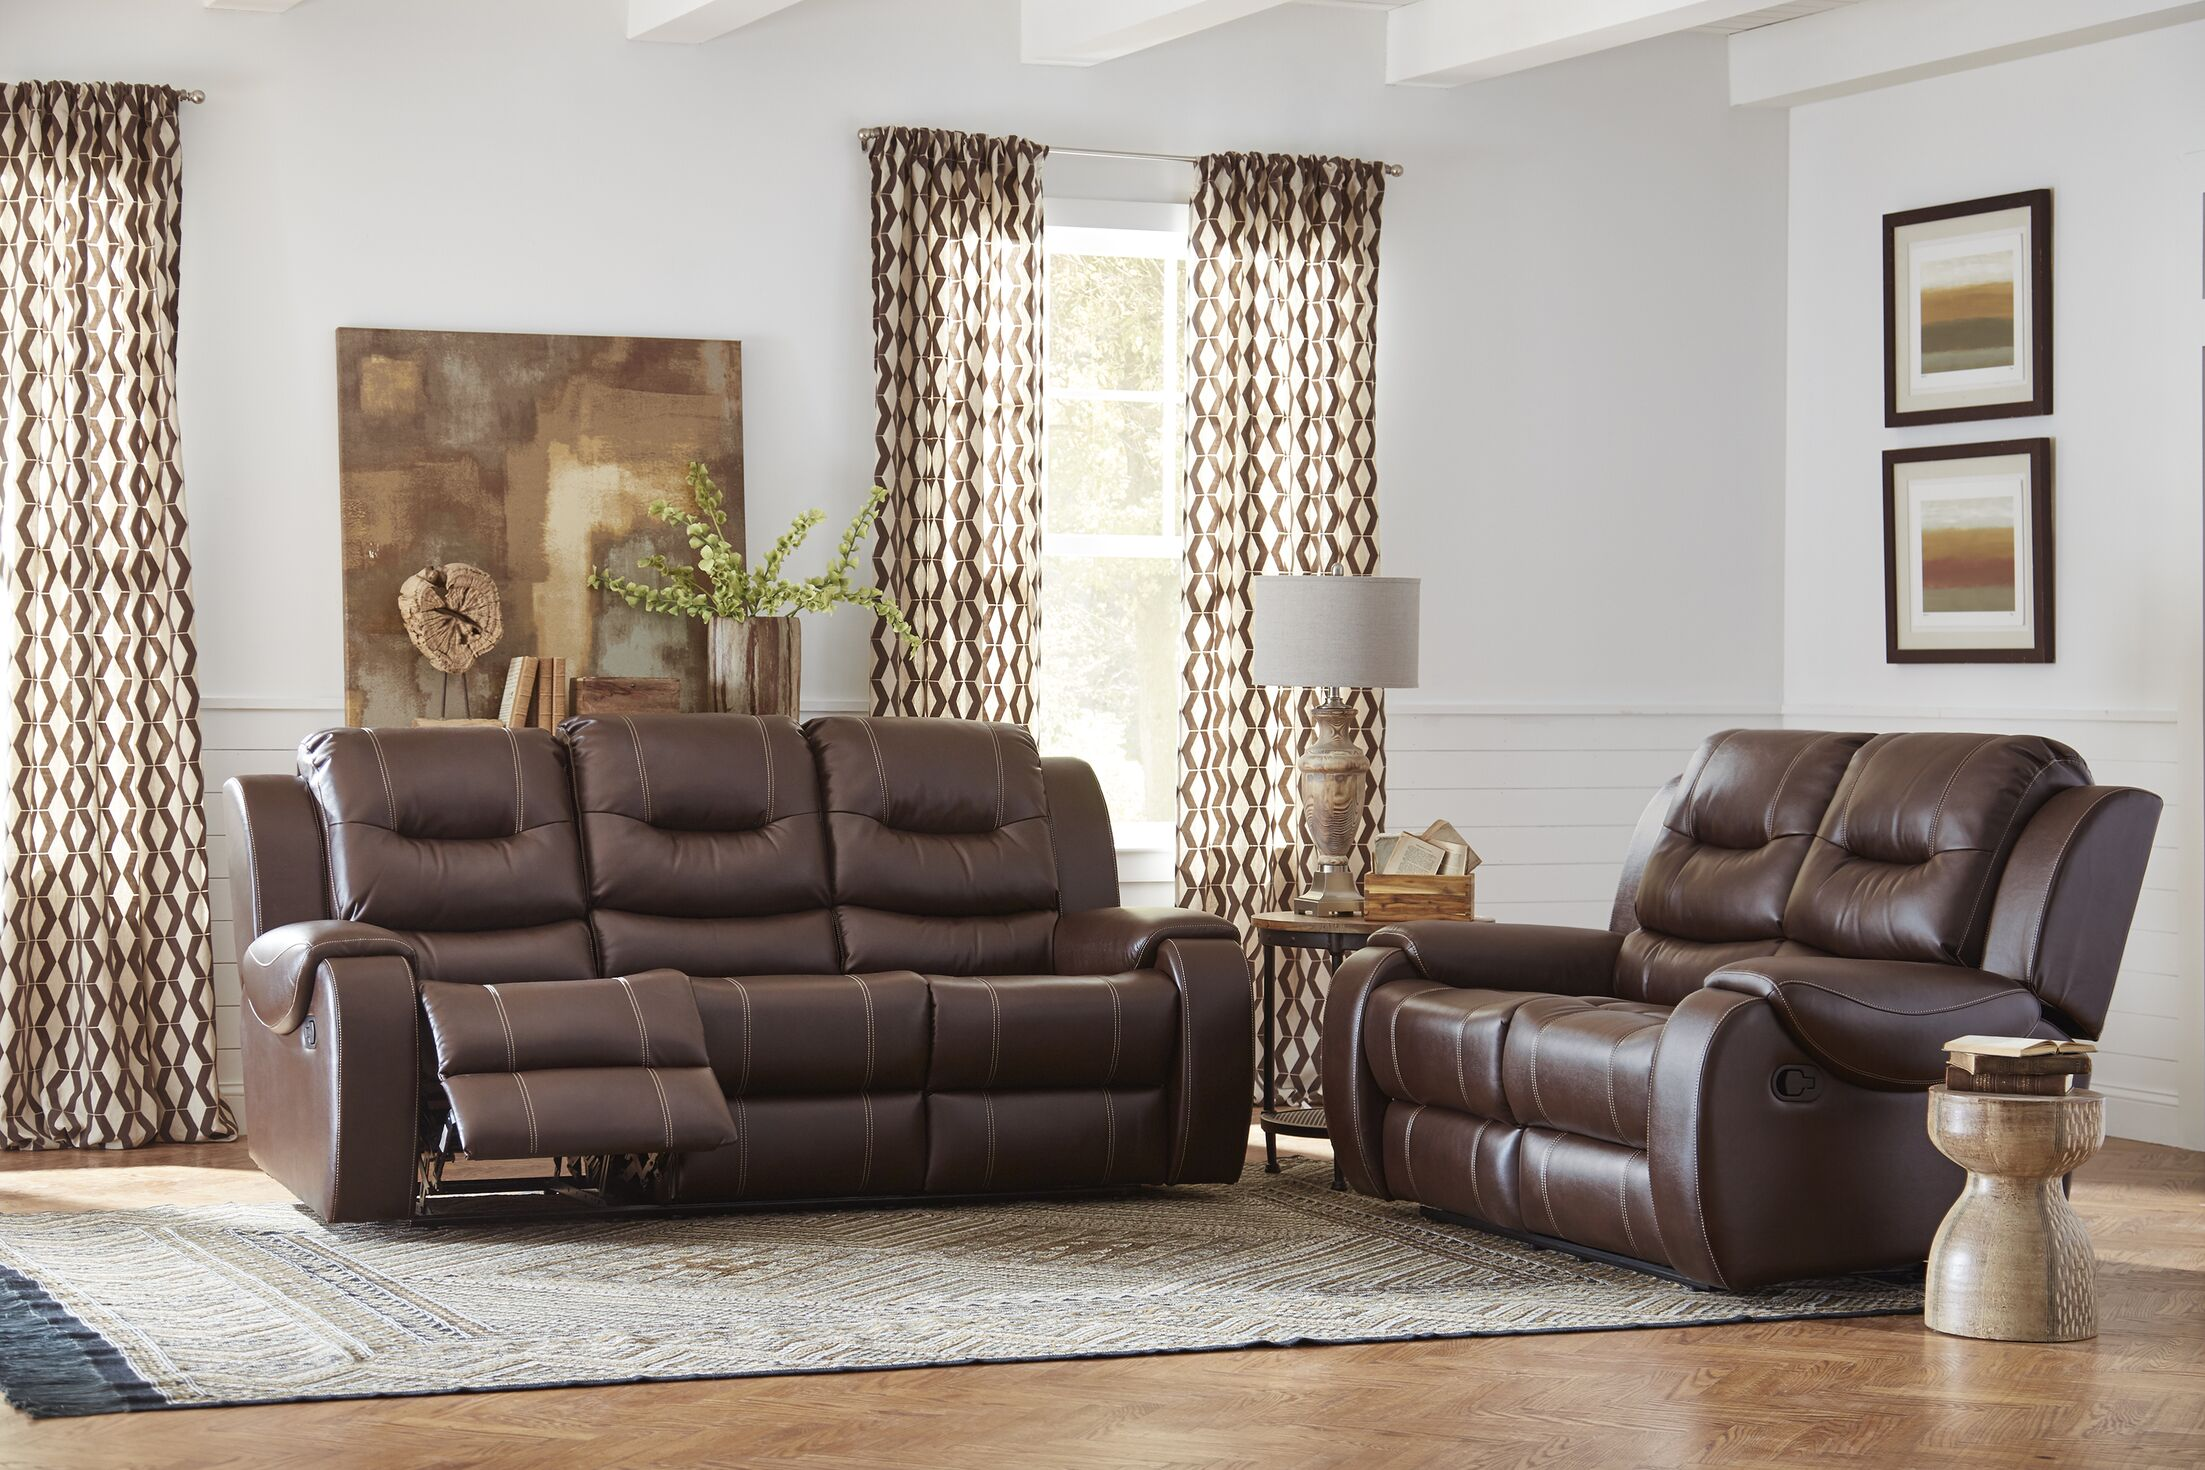 Daigre Reclining 2 Piece Living Room Set Upholstery: Cocoa Brown